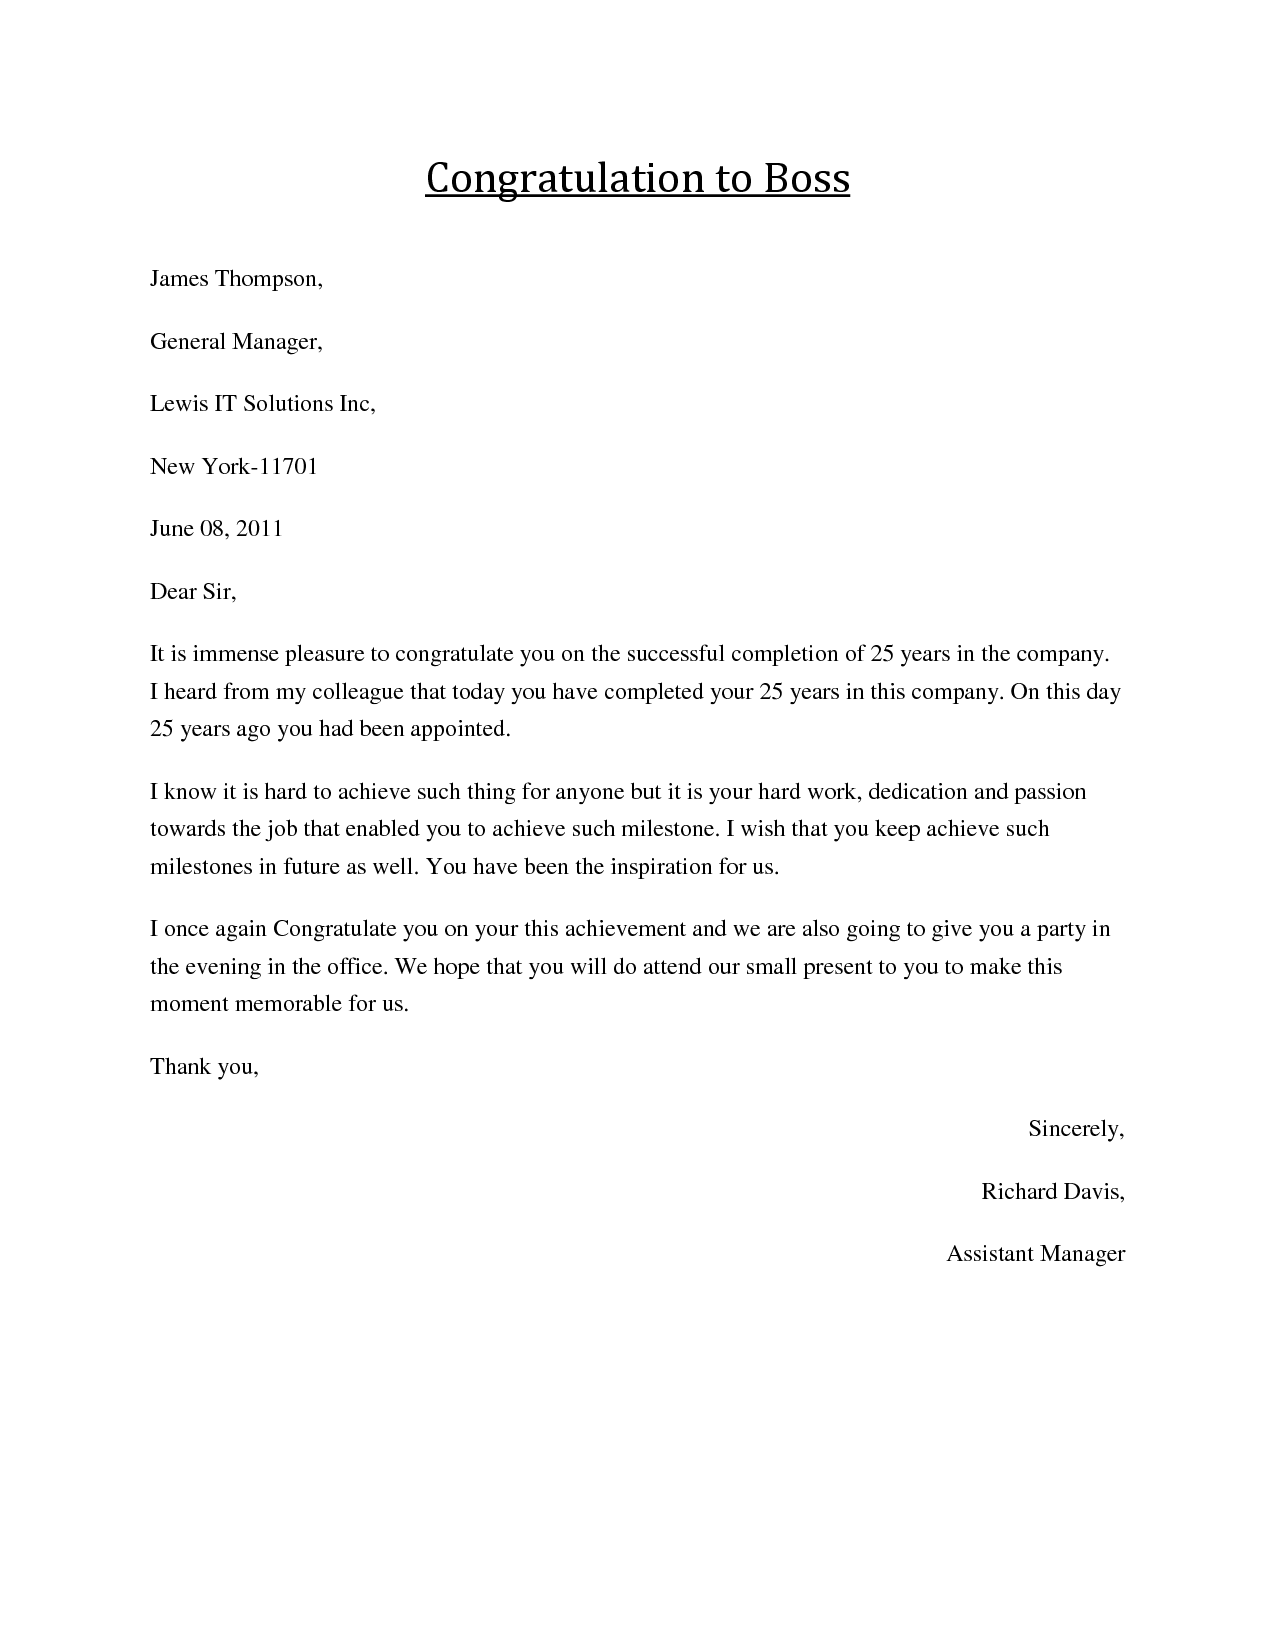 Congratulations letter to boss job congratulations formal congratulations letter to boss job congratulations formal business letters and greeting messages to boss m4hsunfo